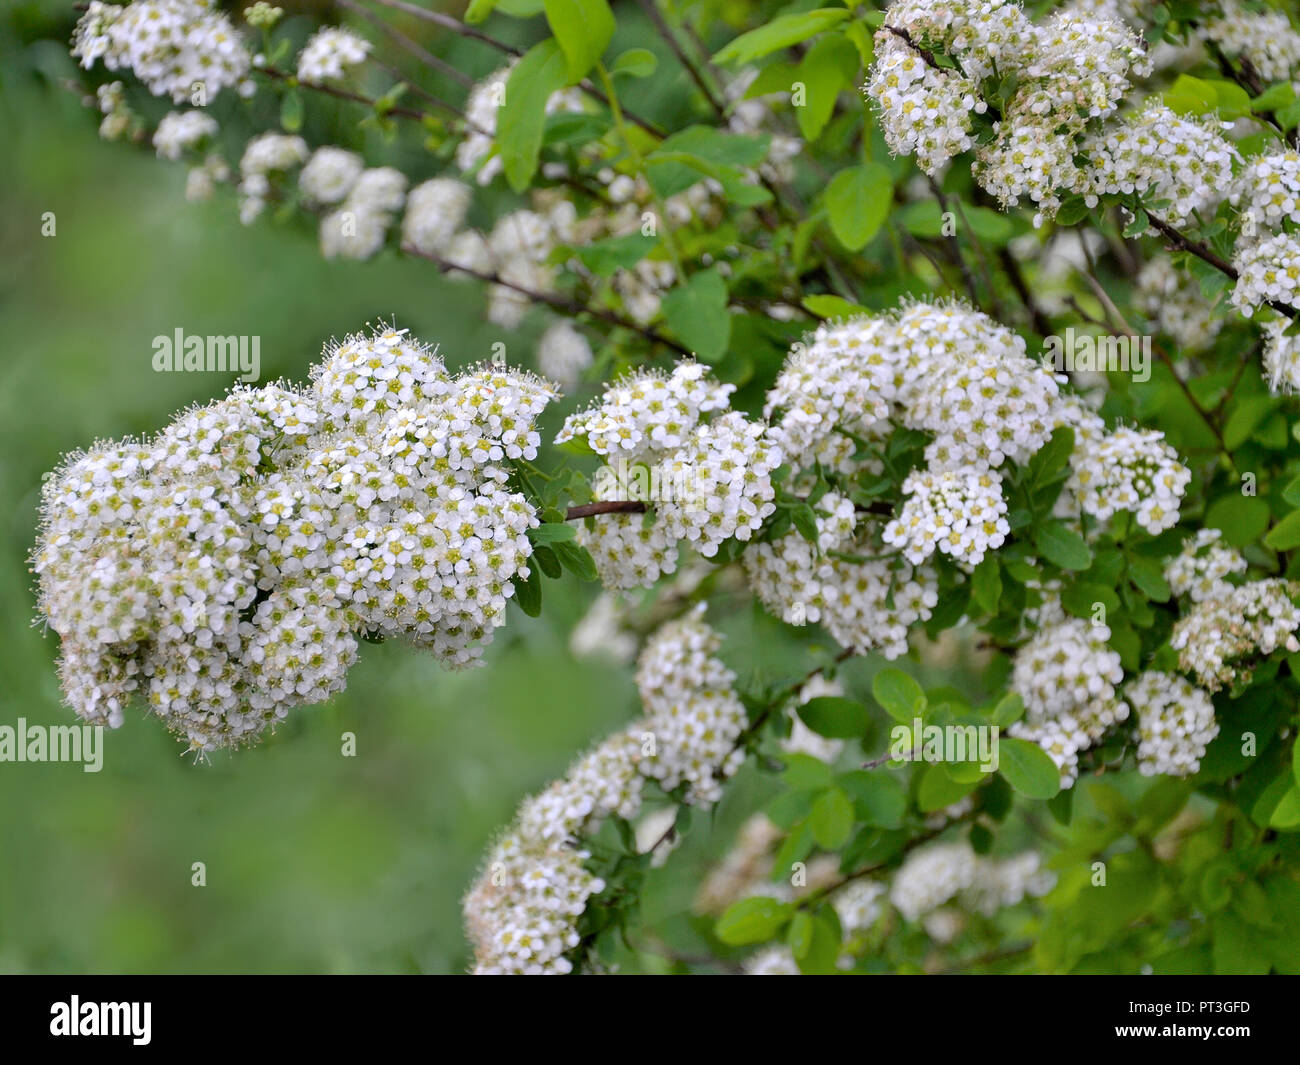 Spirea Flowering Branch With Delicate Small White Flowers